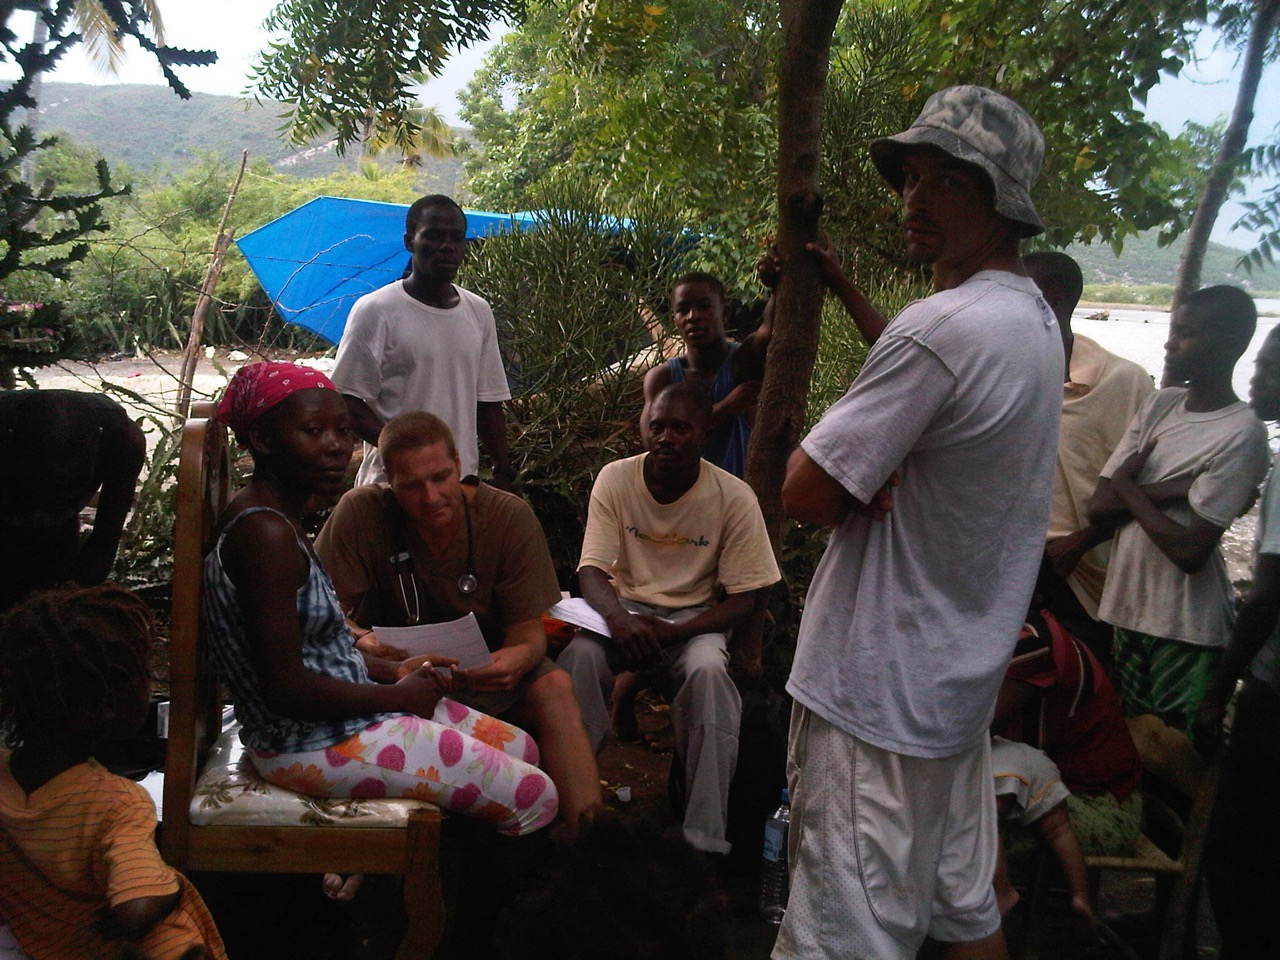 Our first mobile clinic deployment in Petit Goave